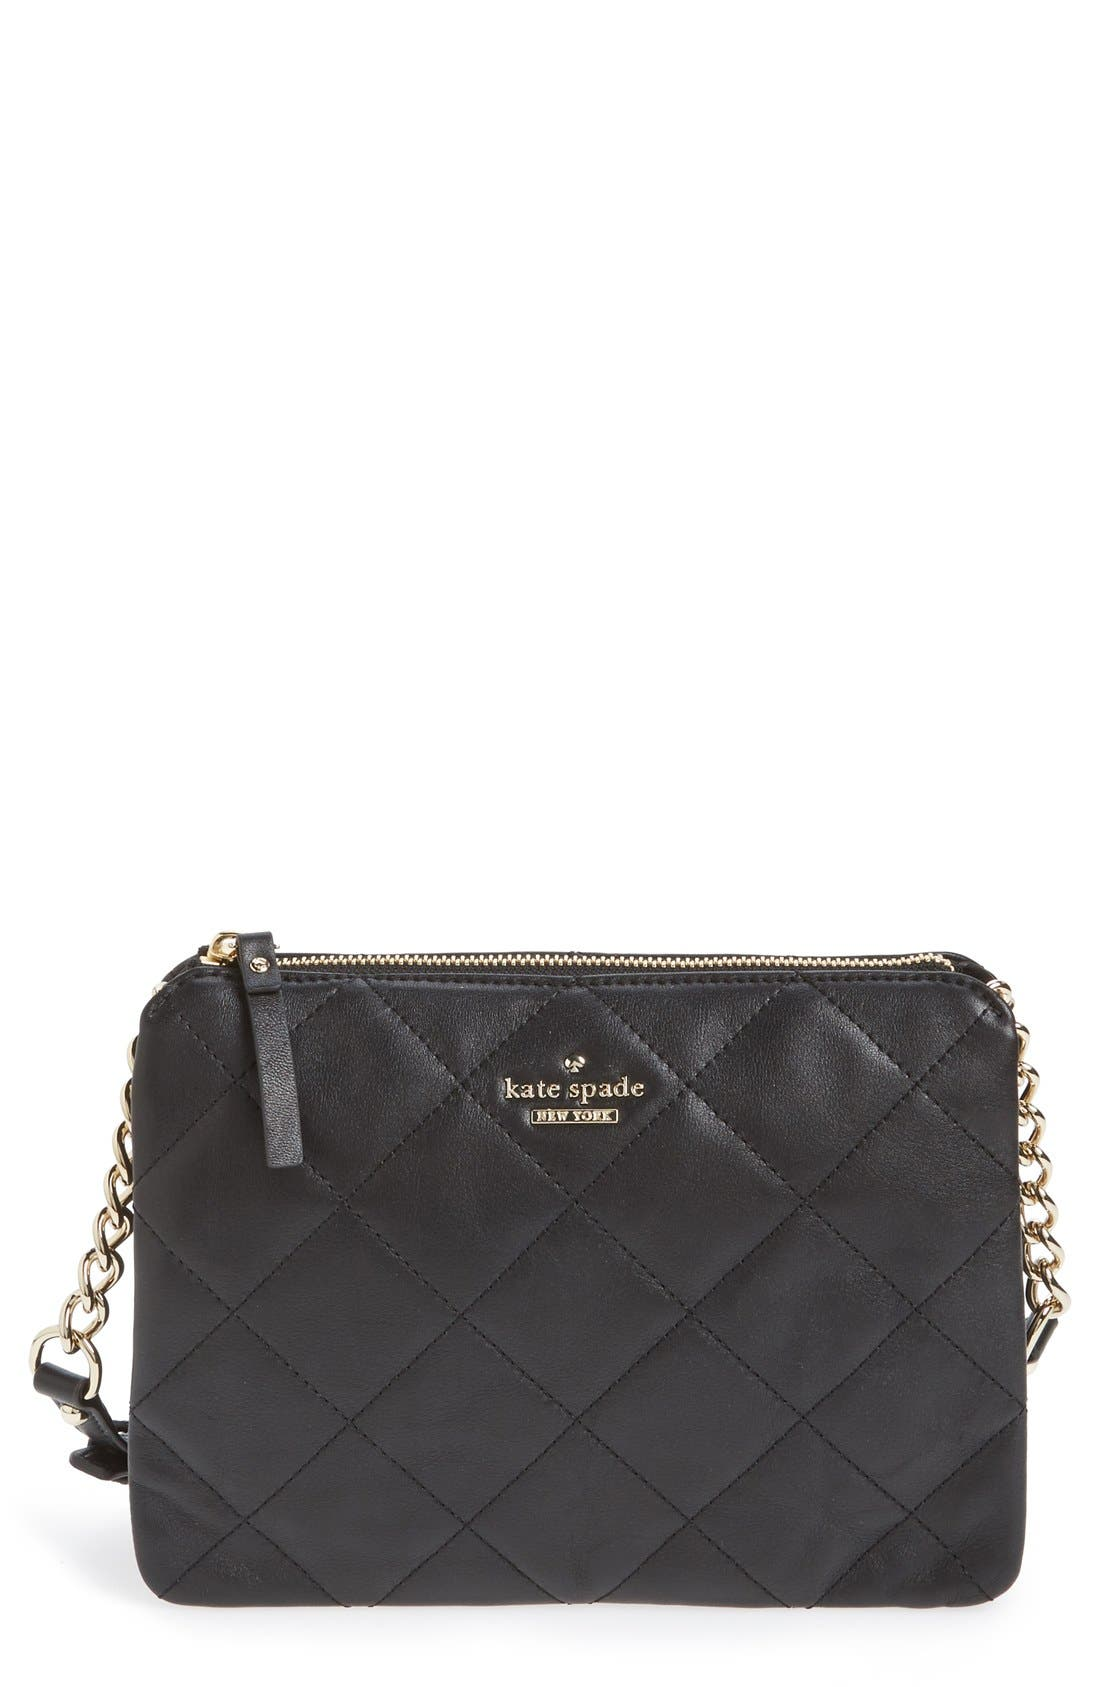 KATE SPADE NEW YORK emerson place harbor leather